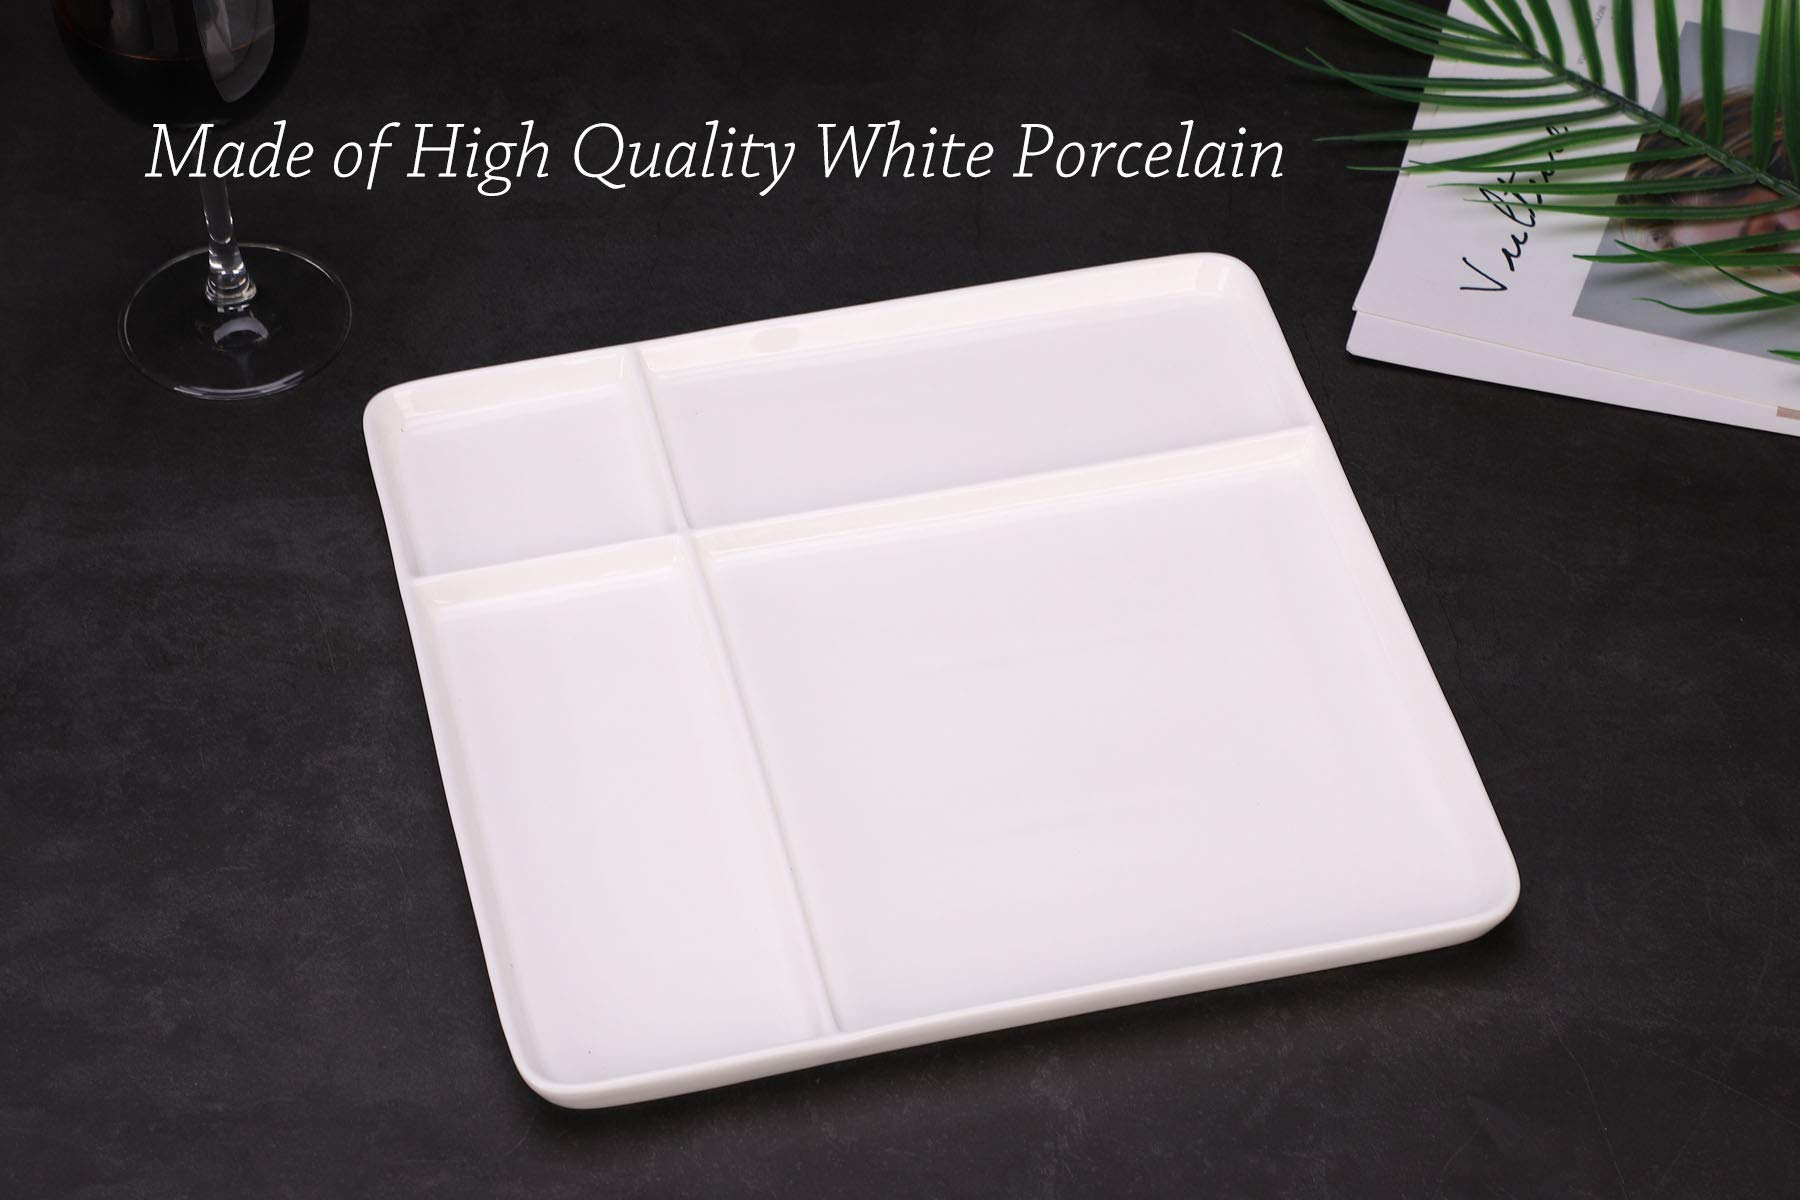 Ceramic Divided Plate with Bamboo Cutting Board - Cheese Board Salad Plate Dinner Plate Cake Plate - Gift Idea - Great Use as Any Occasion (White) by One Goods-1 (Image #6)